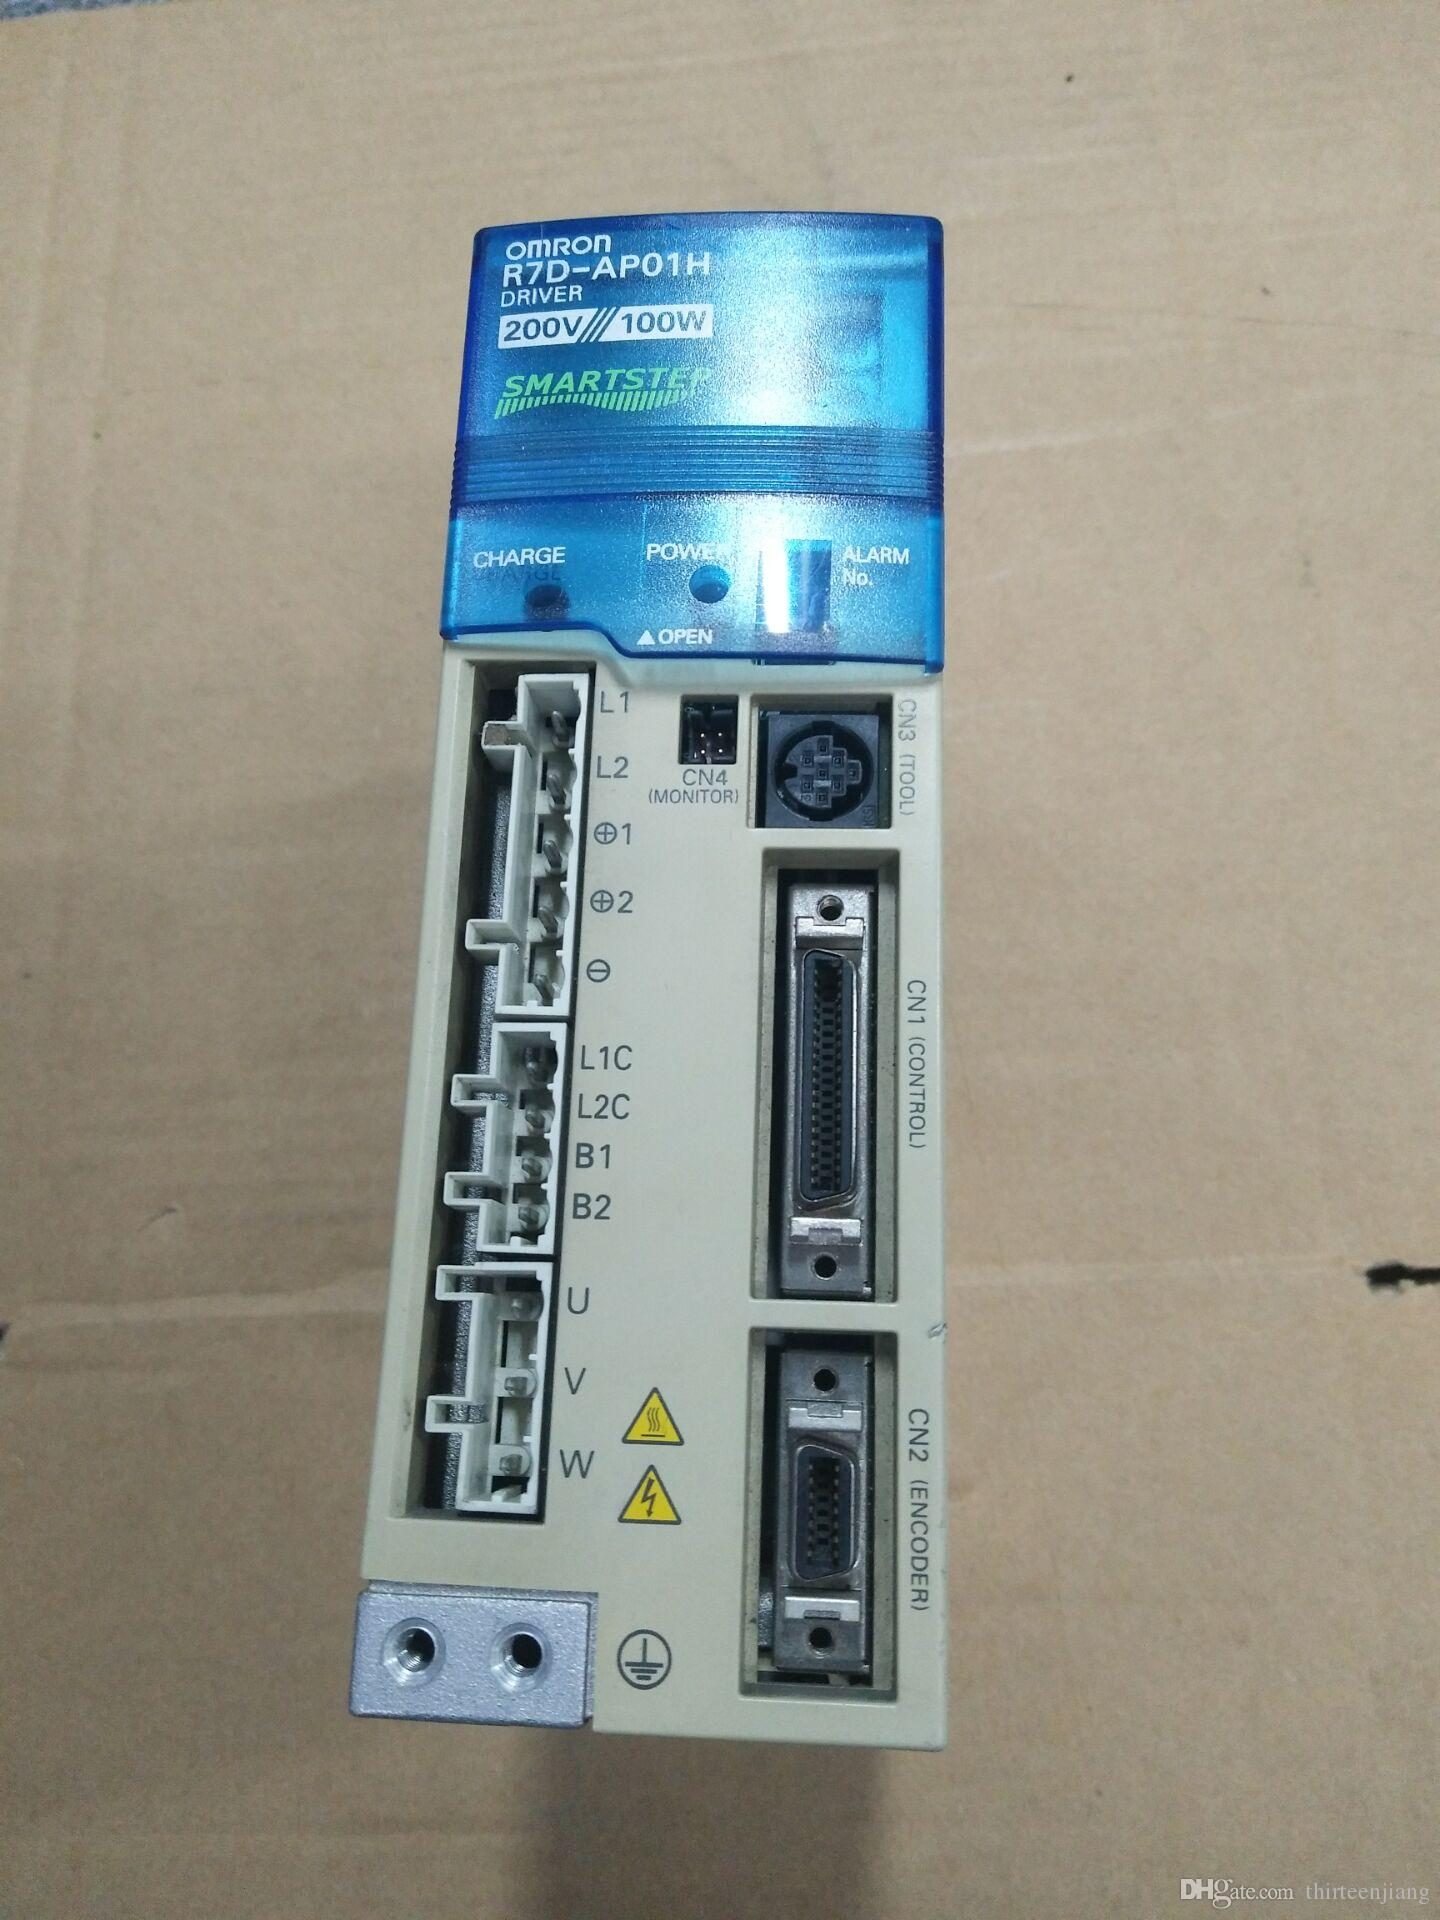 OMRON Servo Drive R7D-AP01H USED 200W AC 2AMPS In Good Condition